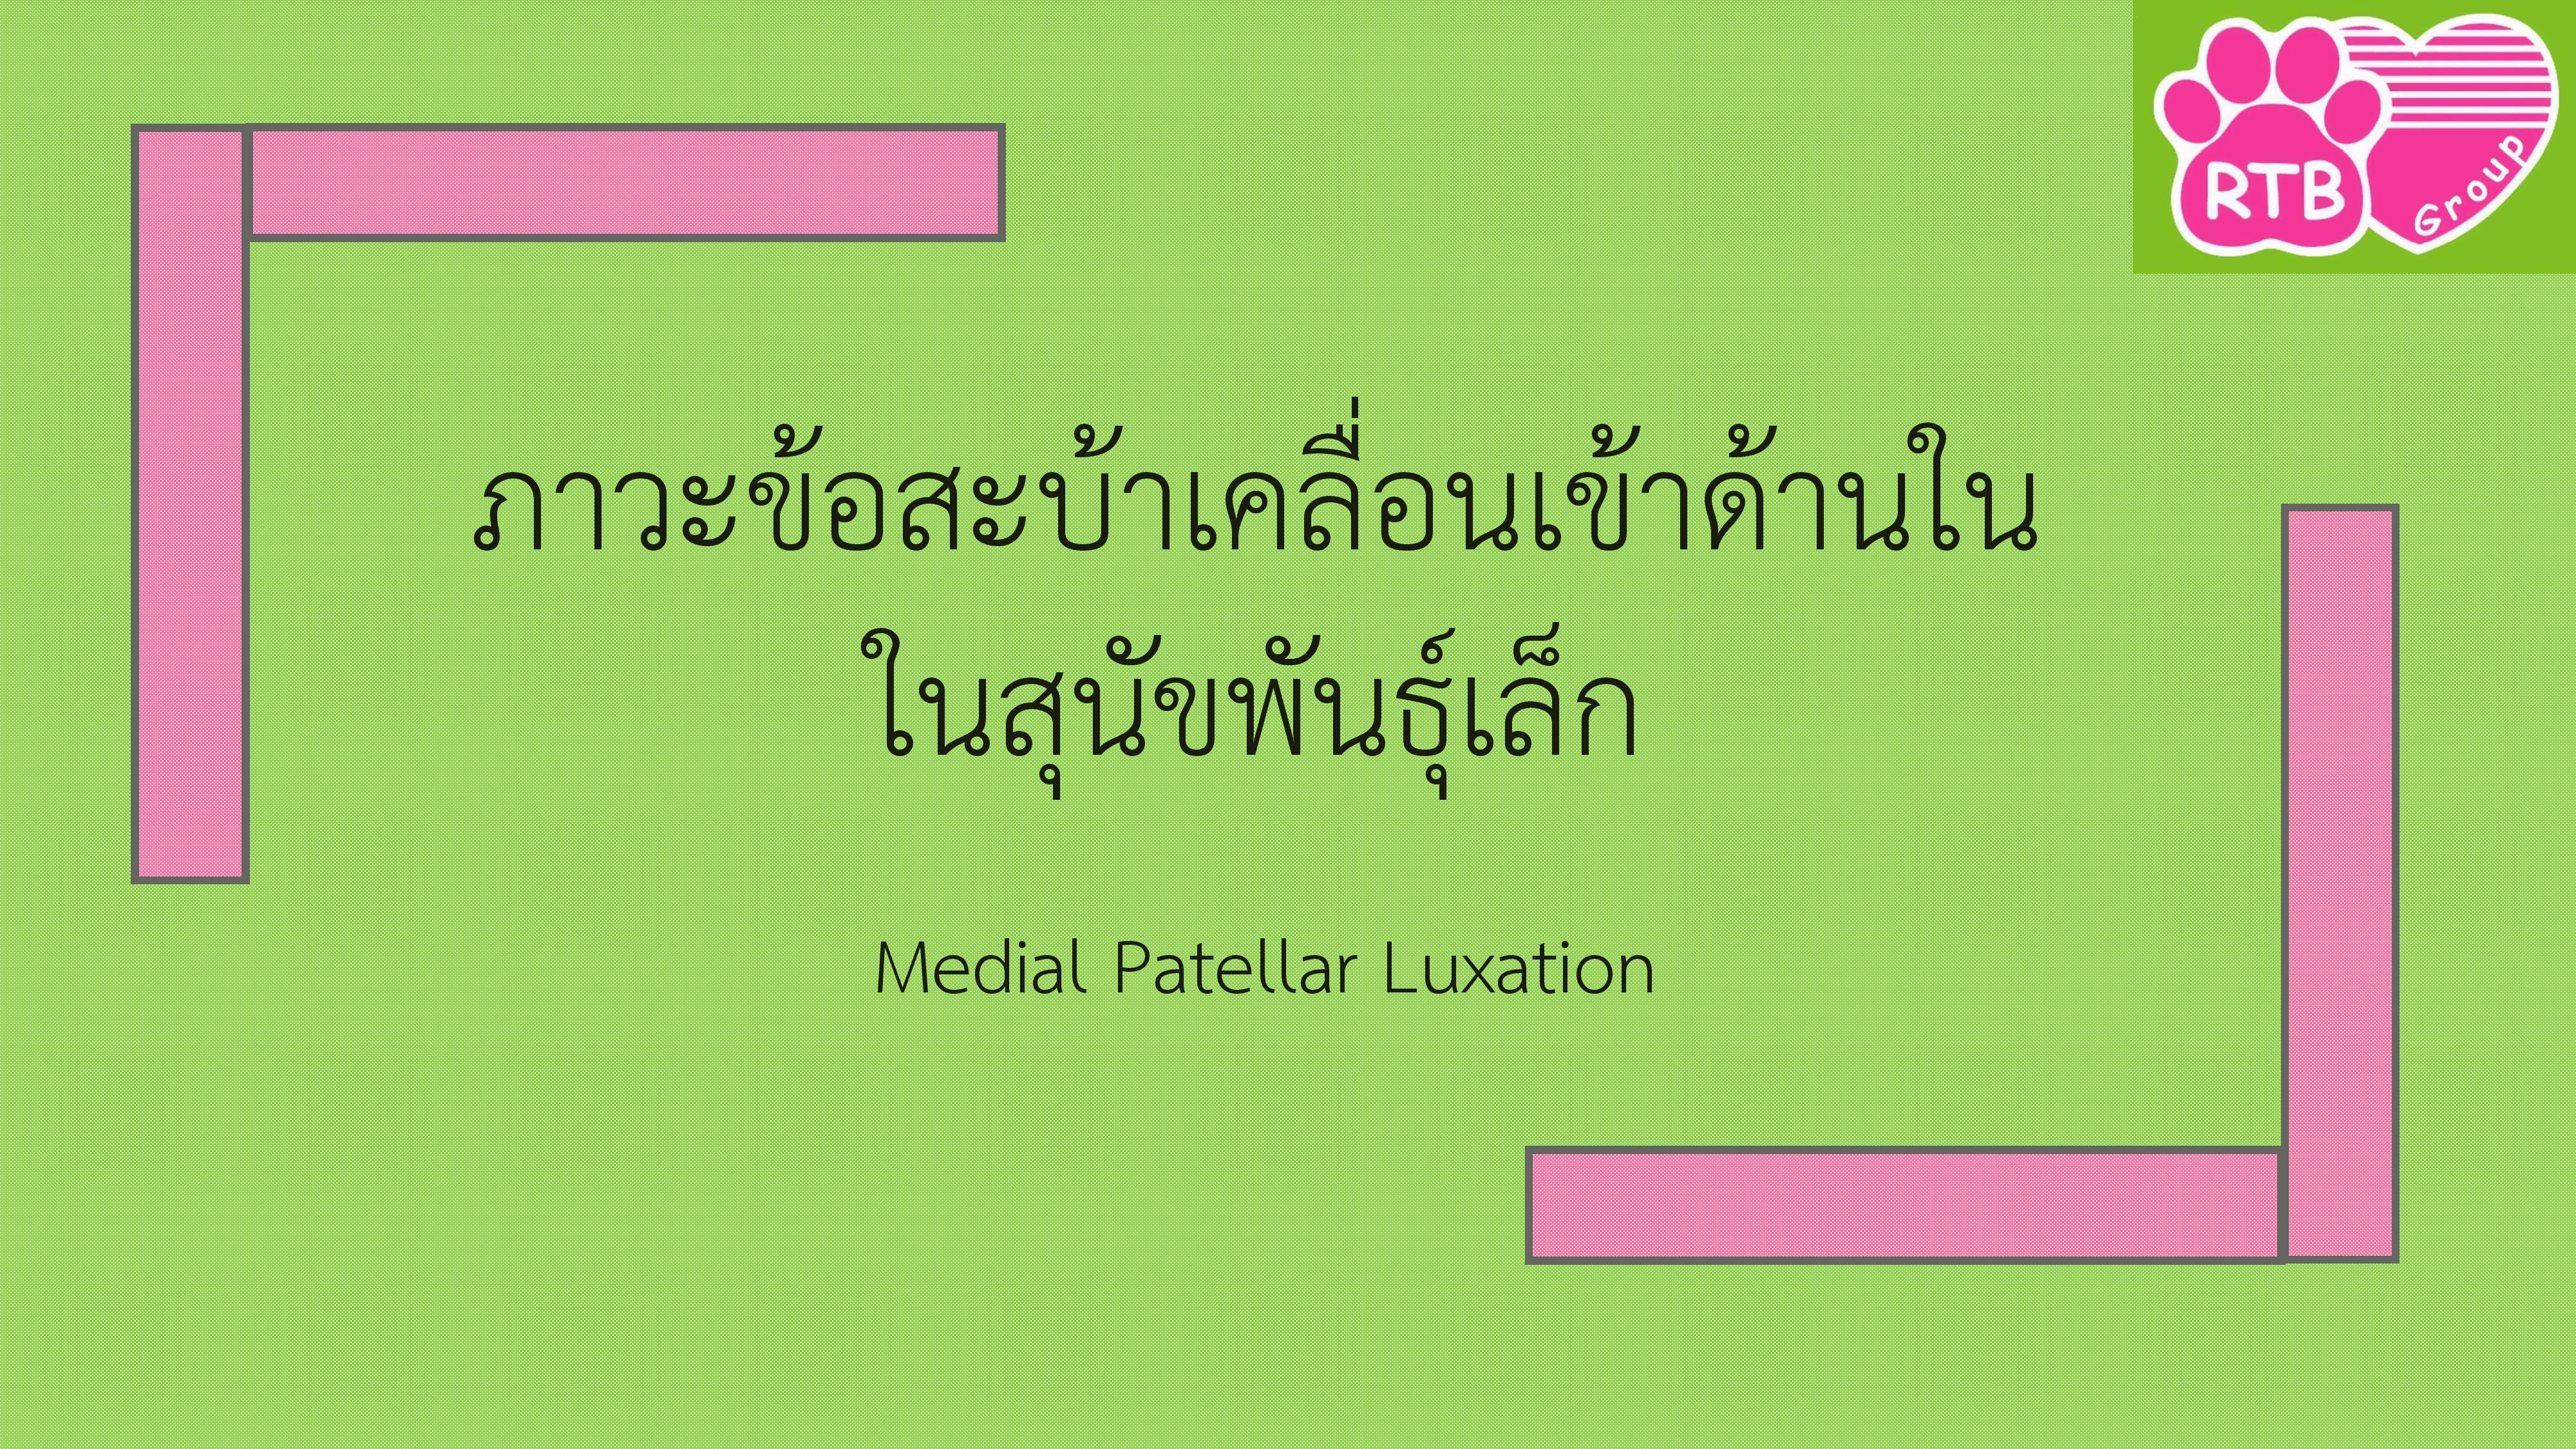 medial patellar luxation-page-001